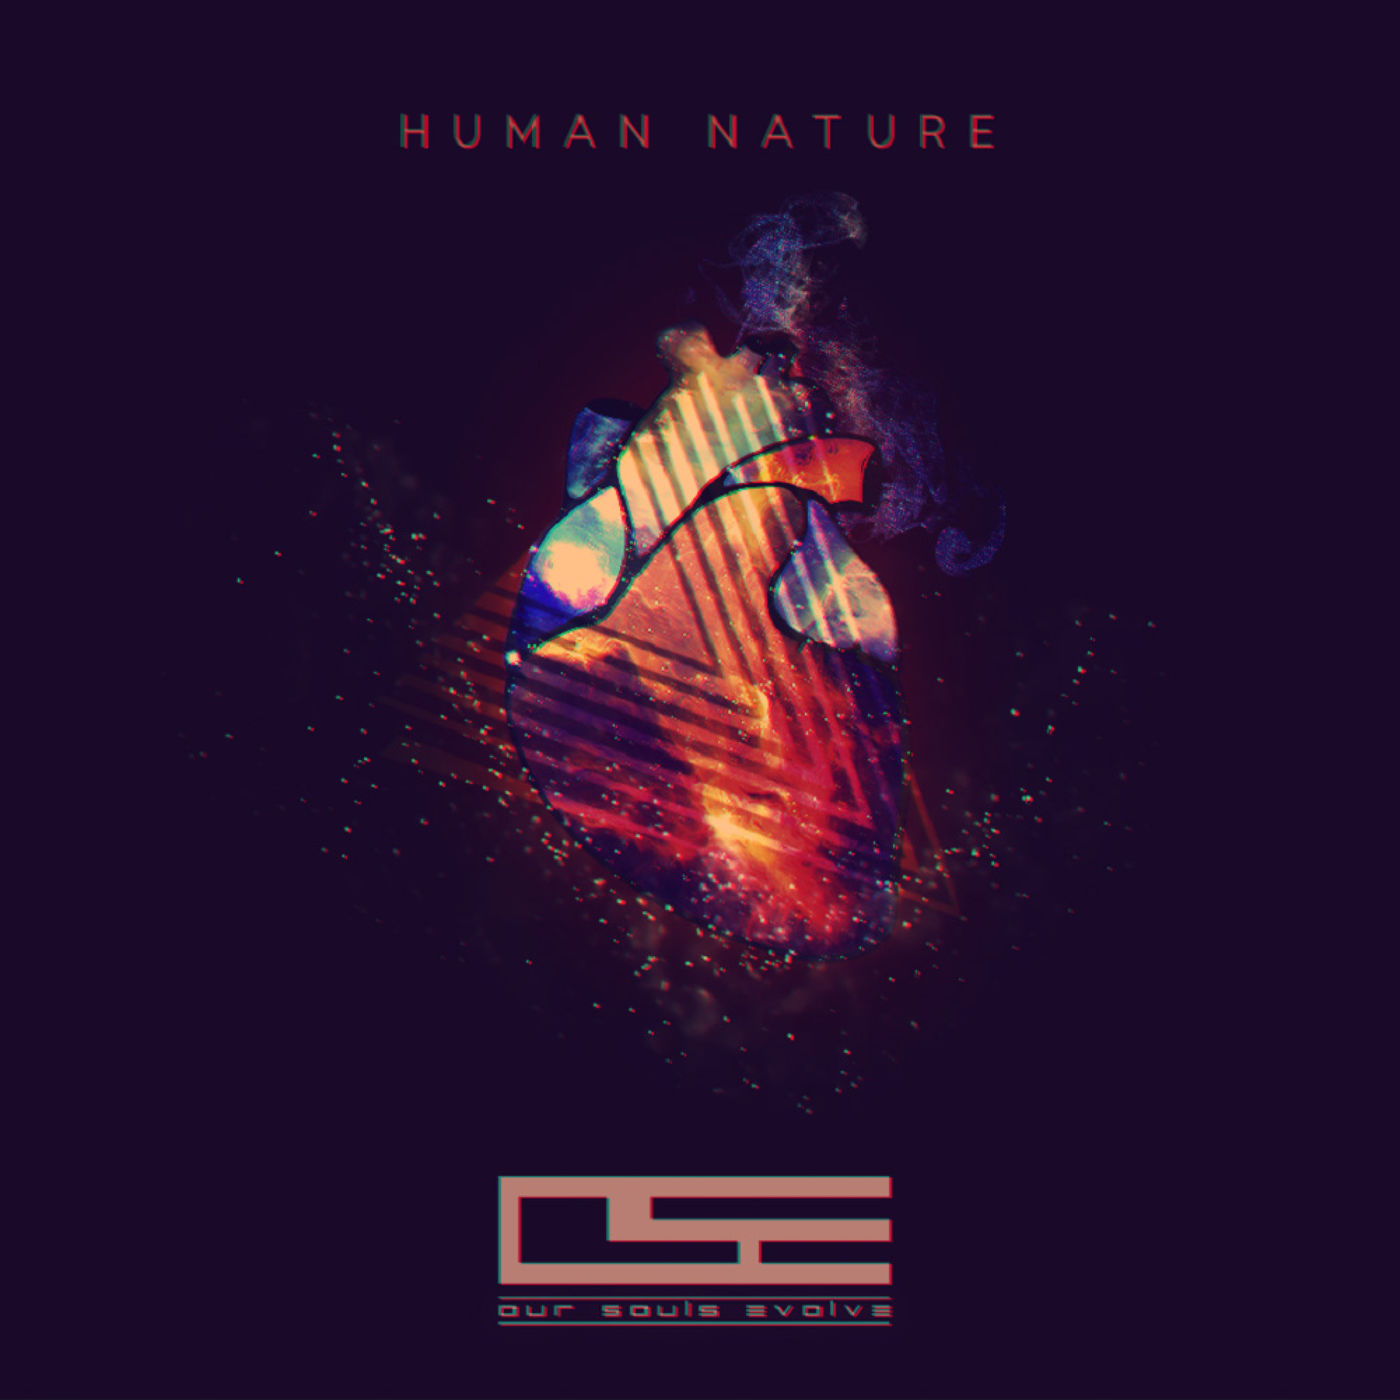 Our Souls Evolve - Human Nature (2019)